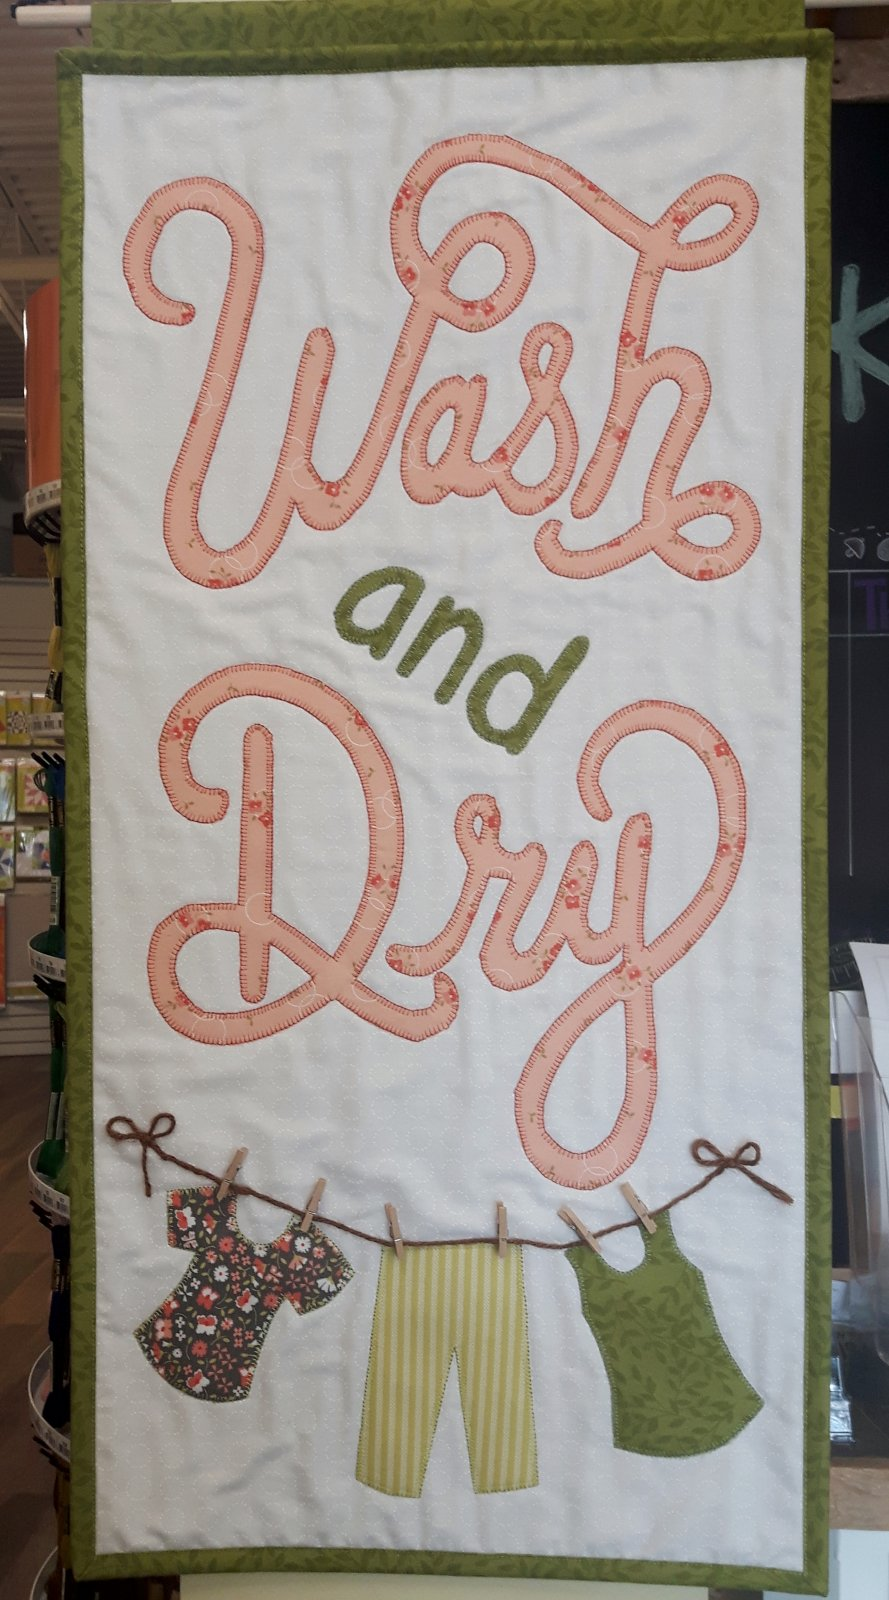 K - Wash and Dry